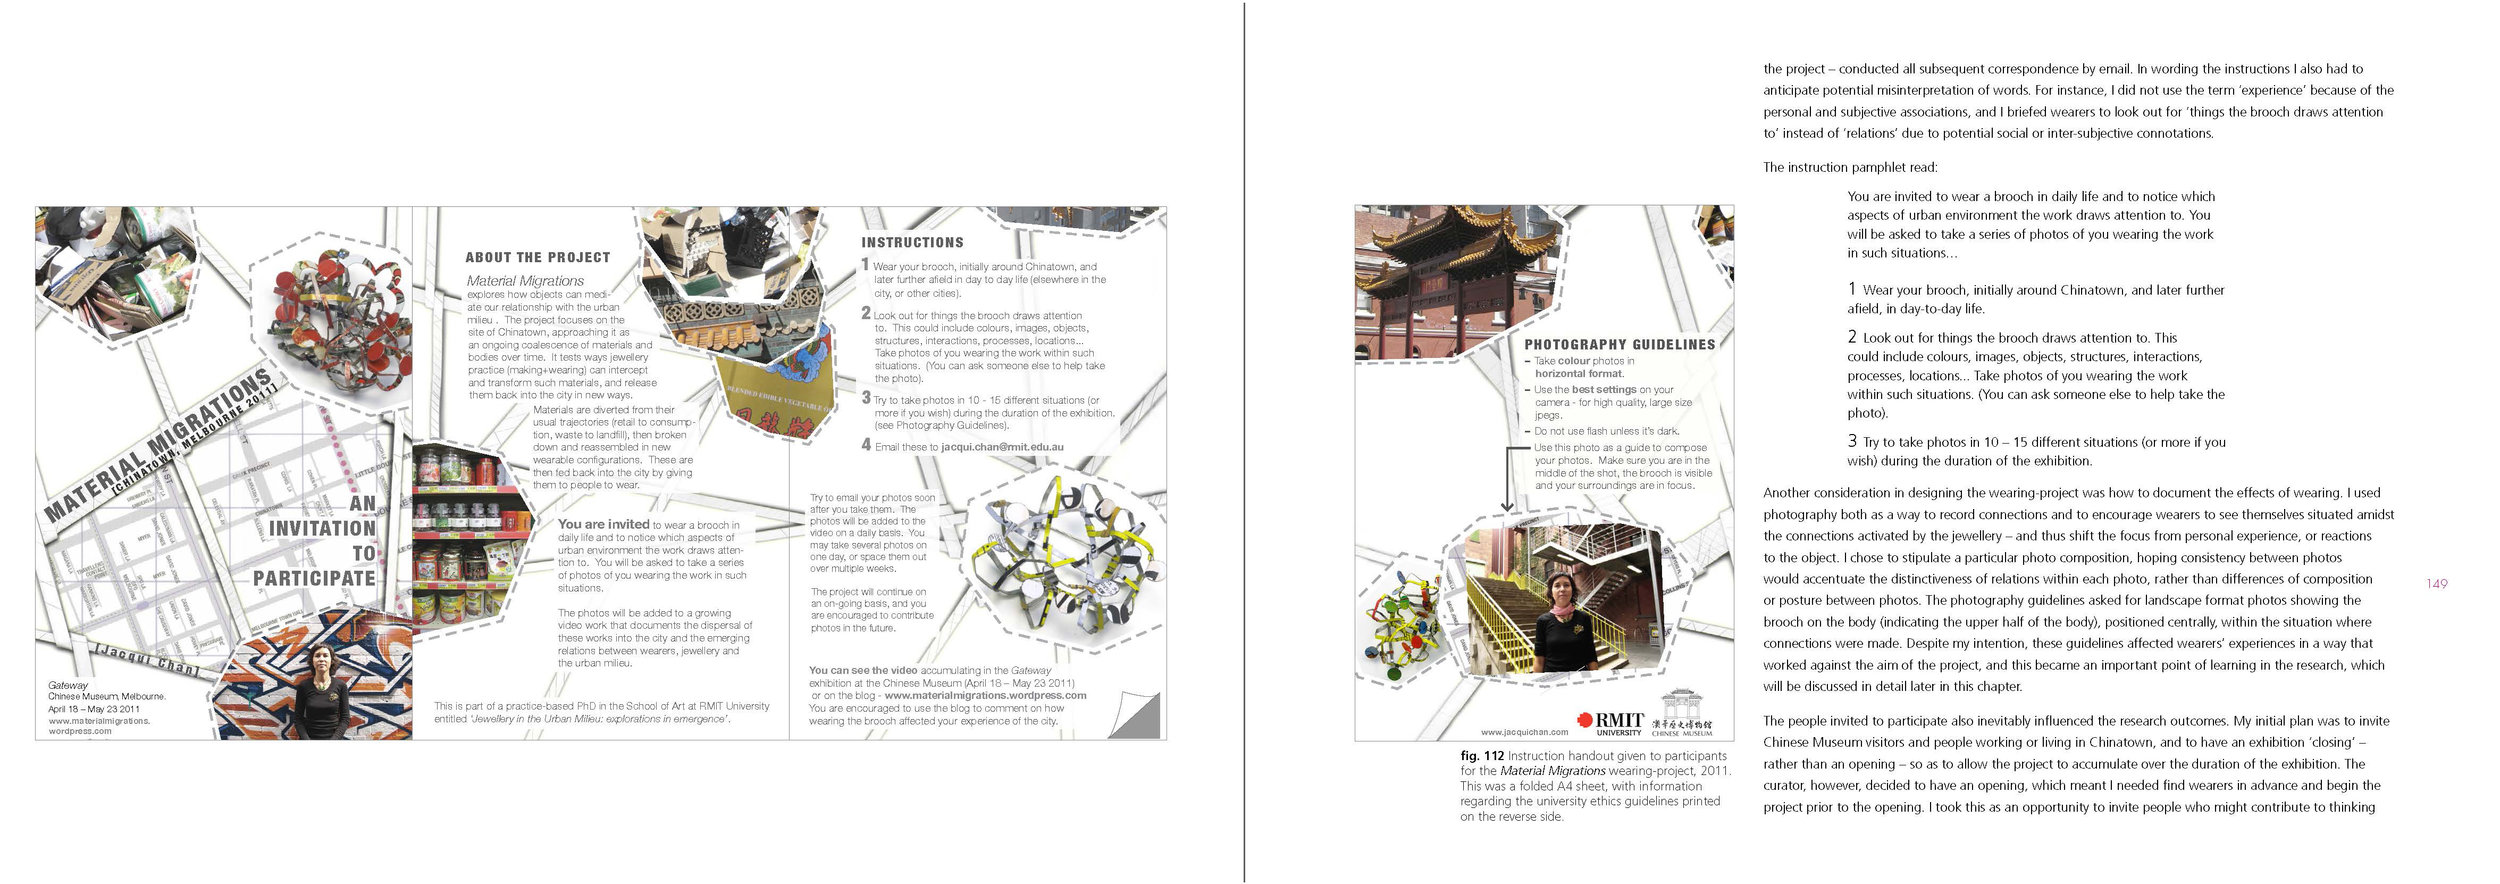 Jacqui Chan_jewellery in the urban milieu_part 2_project milieu 02 + 03_Page_070.jpg